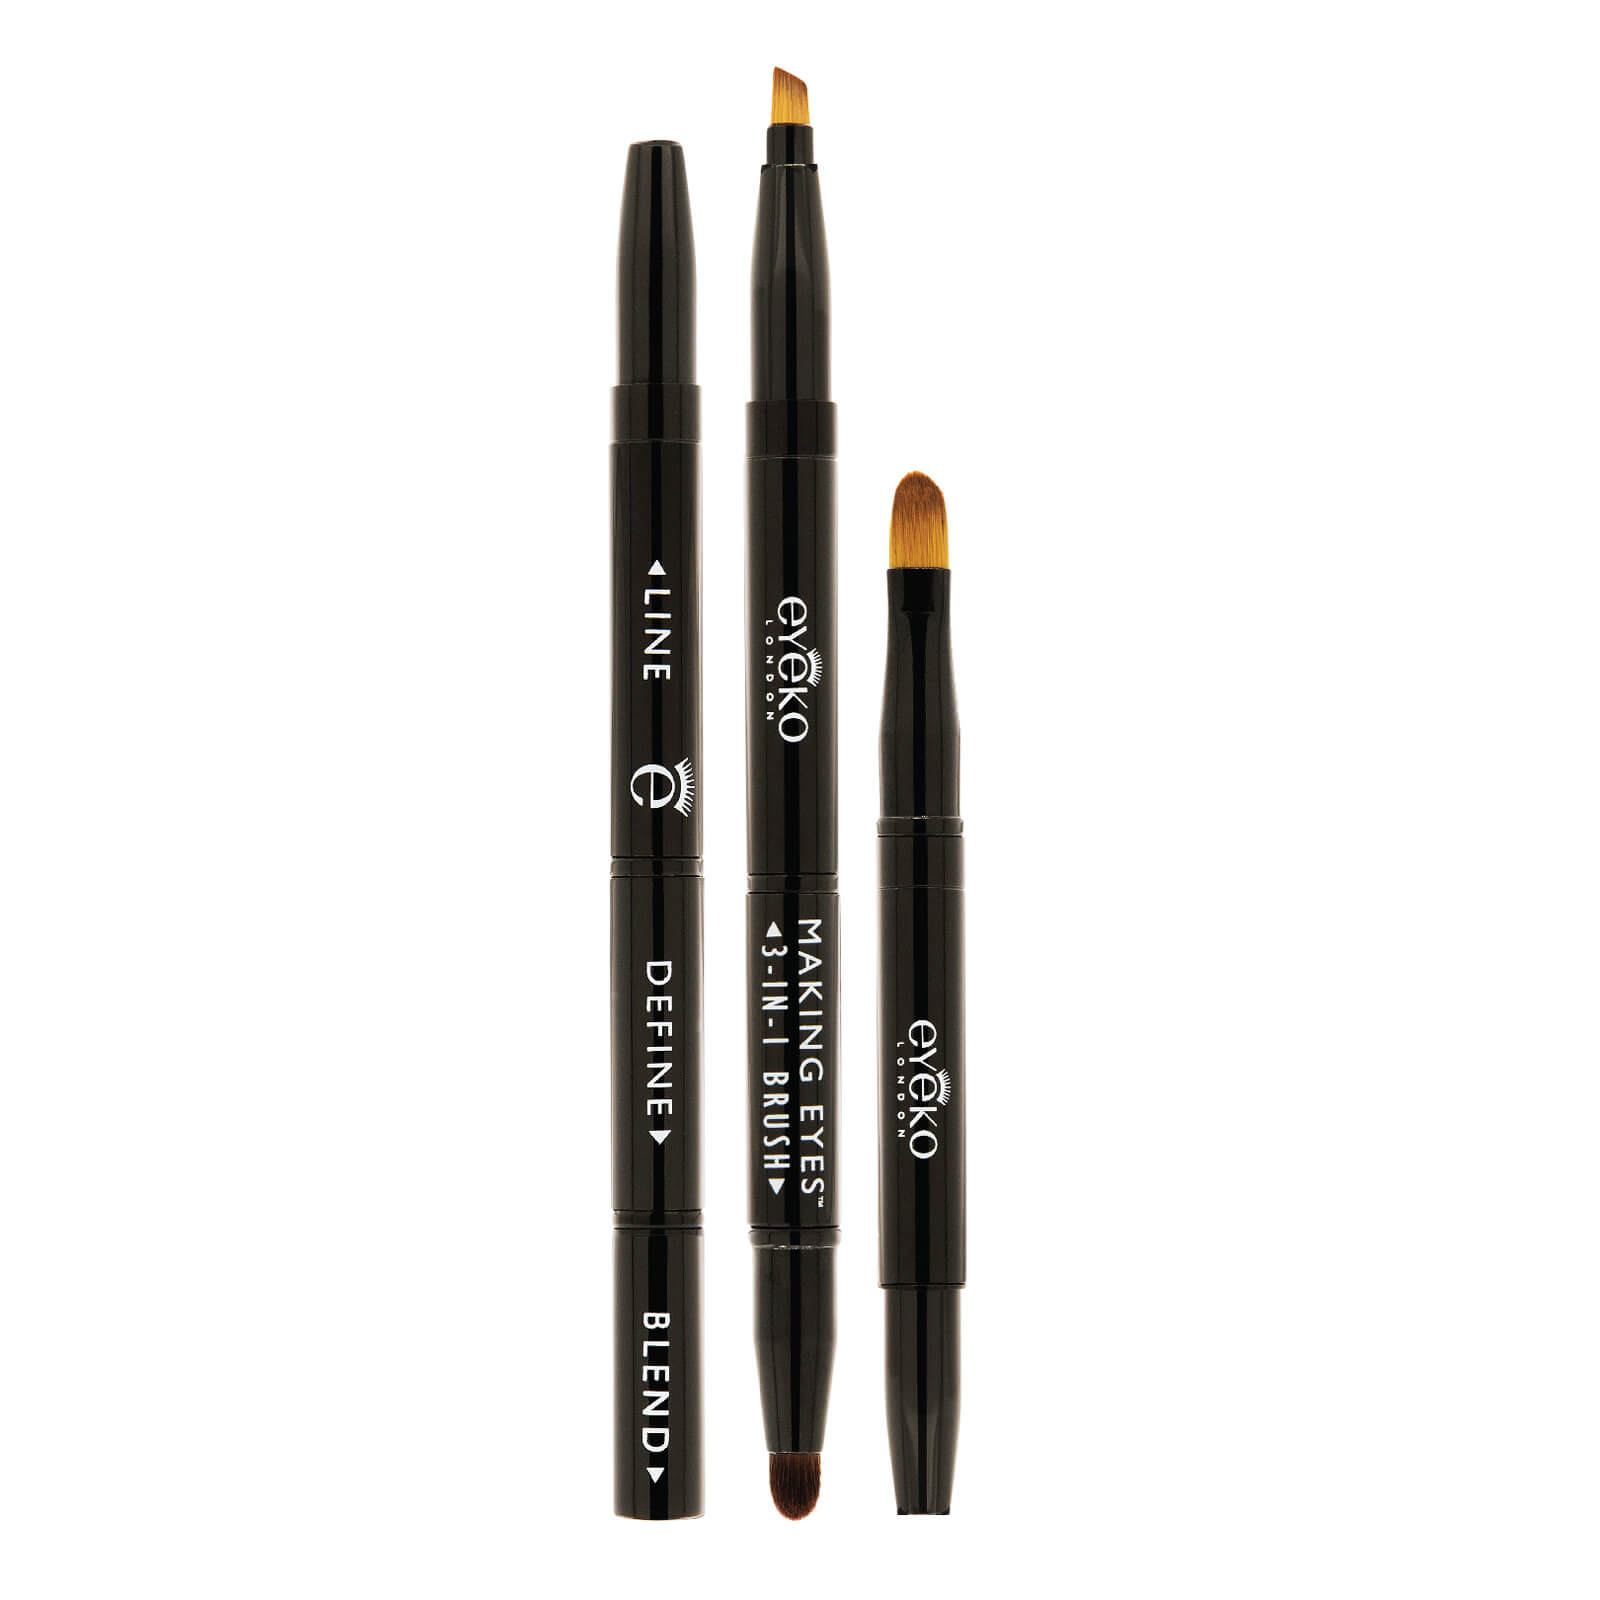 Making Eyes™ 3-in-1 Brush